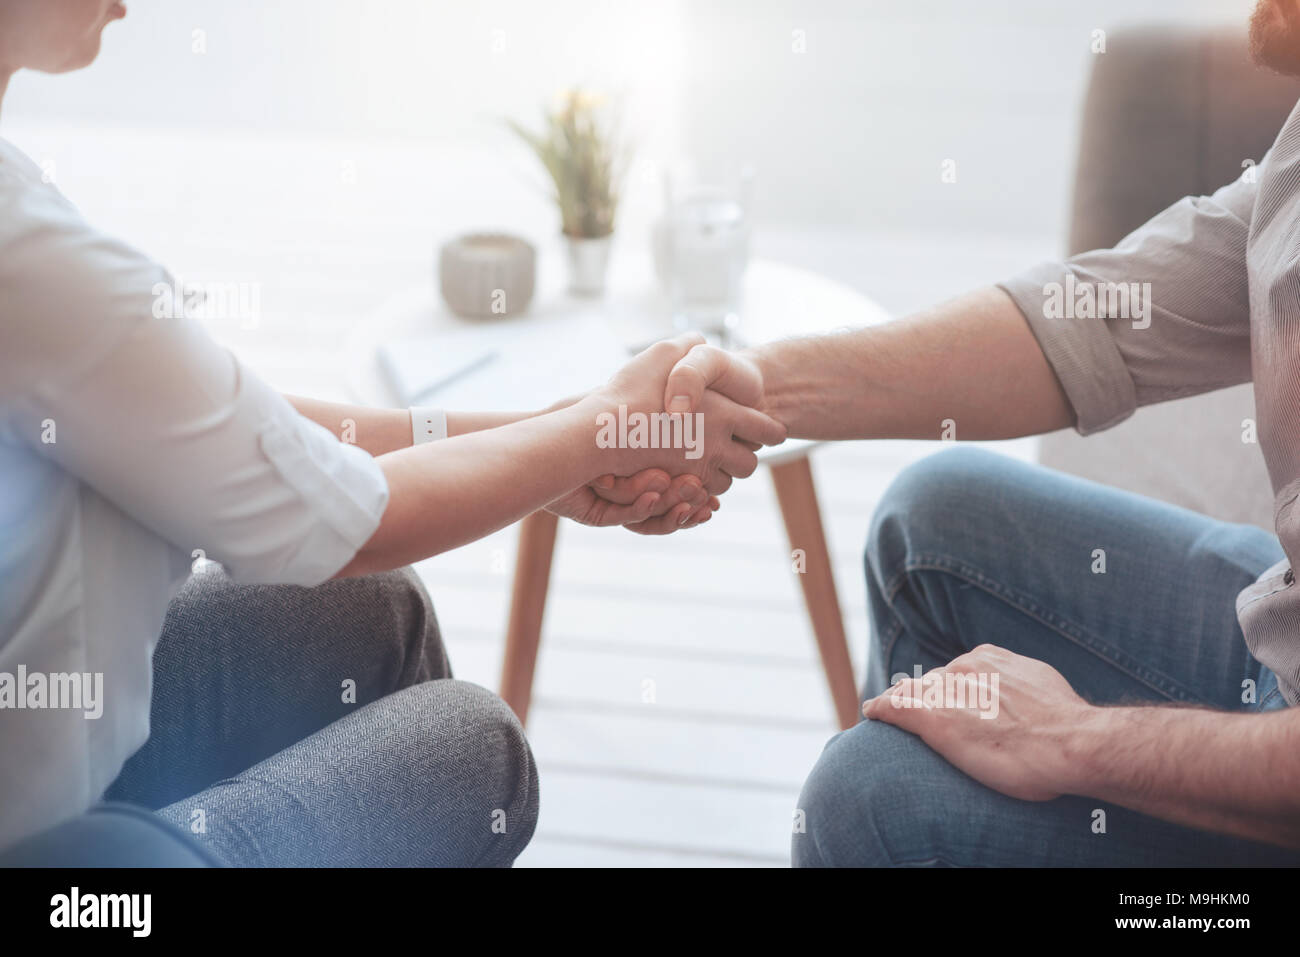 Pleasant friendly people shaking hands - Stock Image